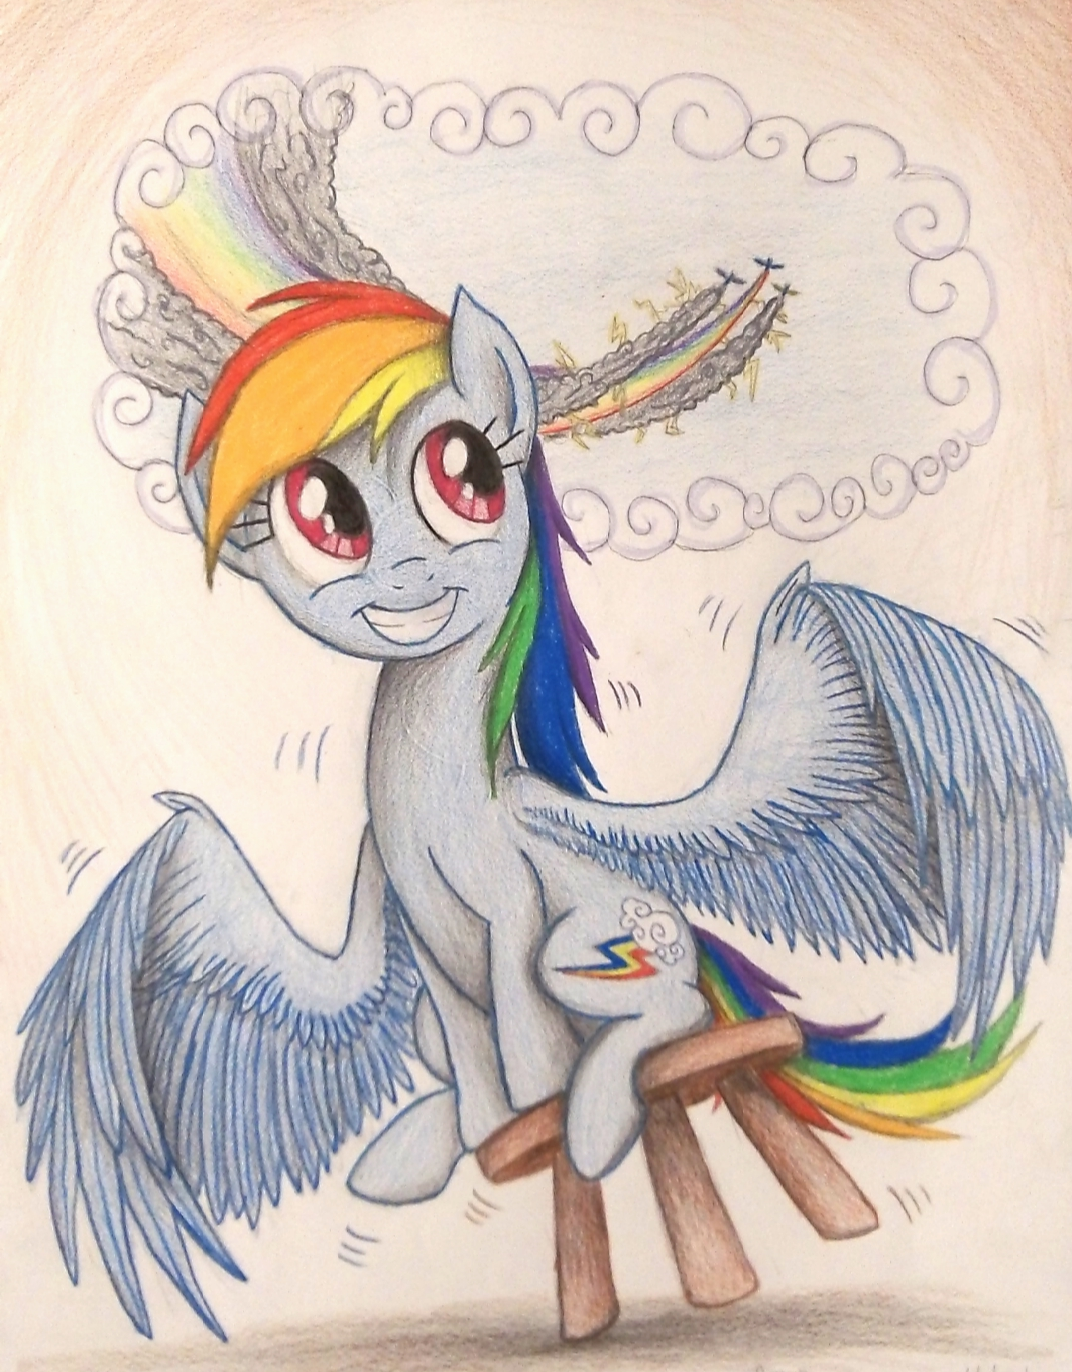 http://orig01.deviantart.net/318c/f/2014/099/b/8/rainbow_rocks_and_dreams_by_thefriendlyelephant-d7dqfxy.png